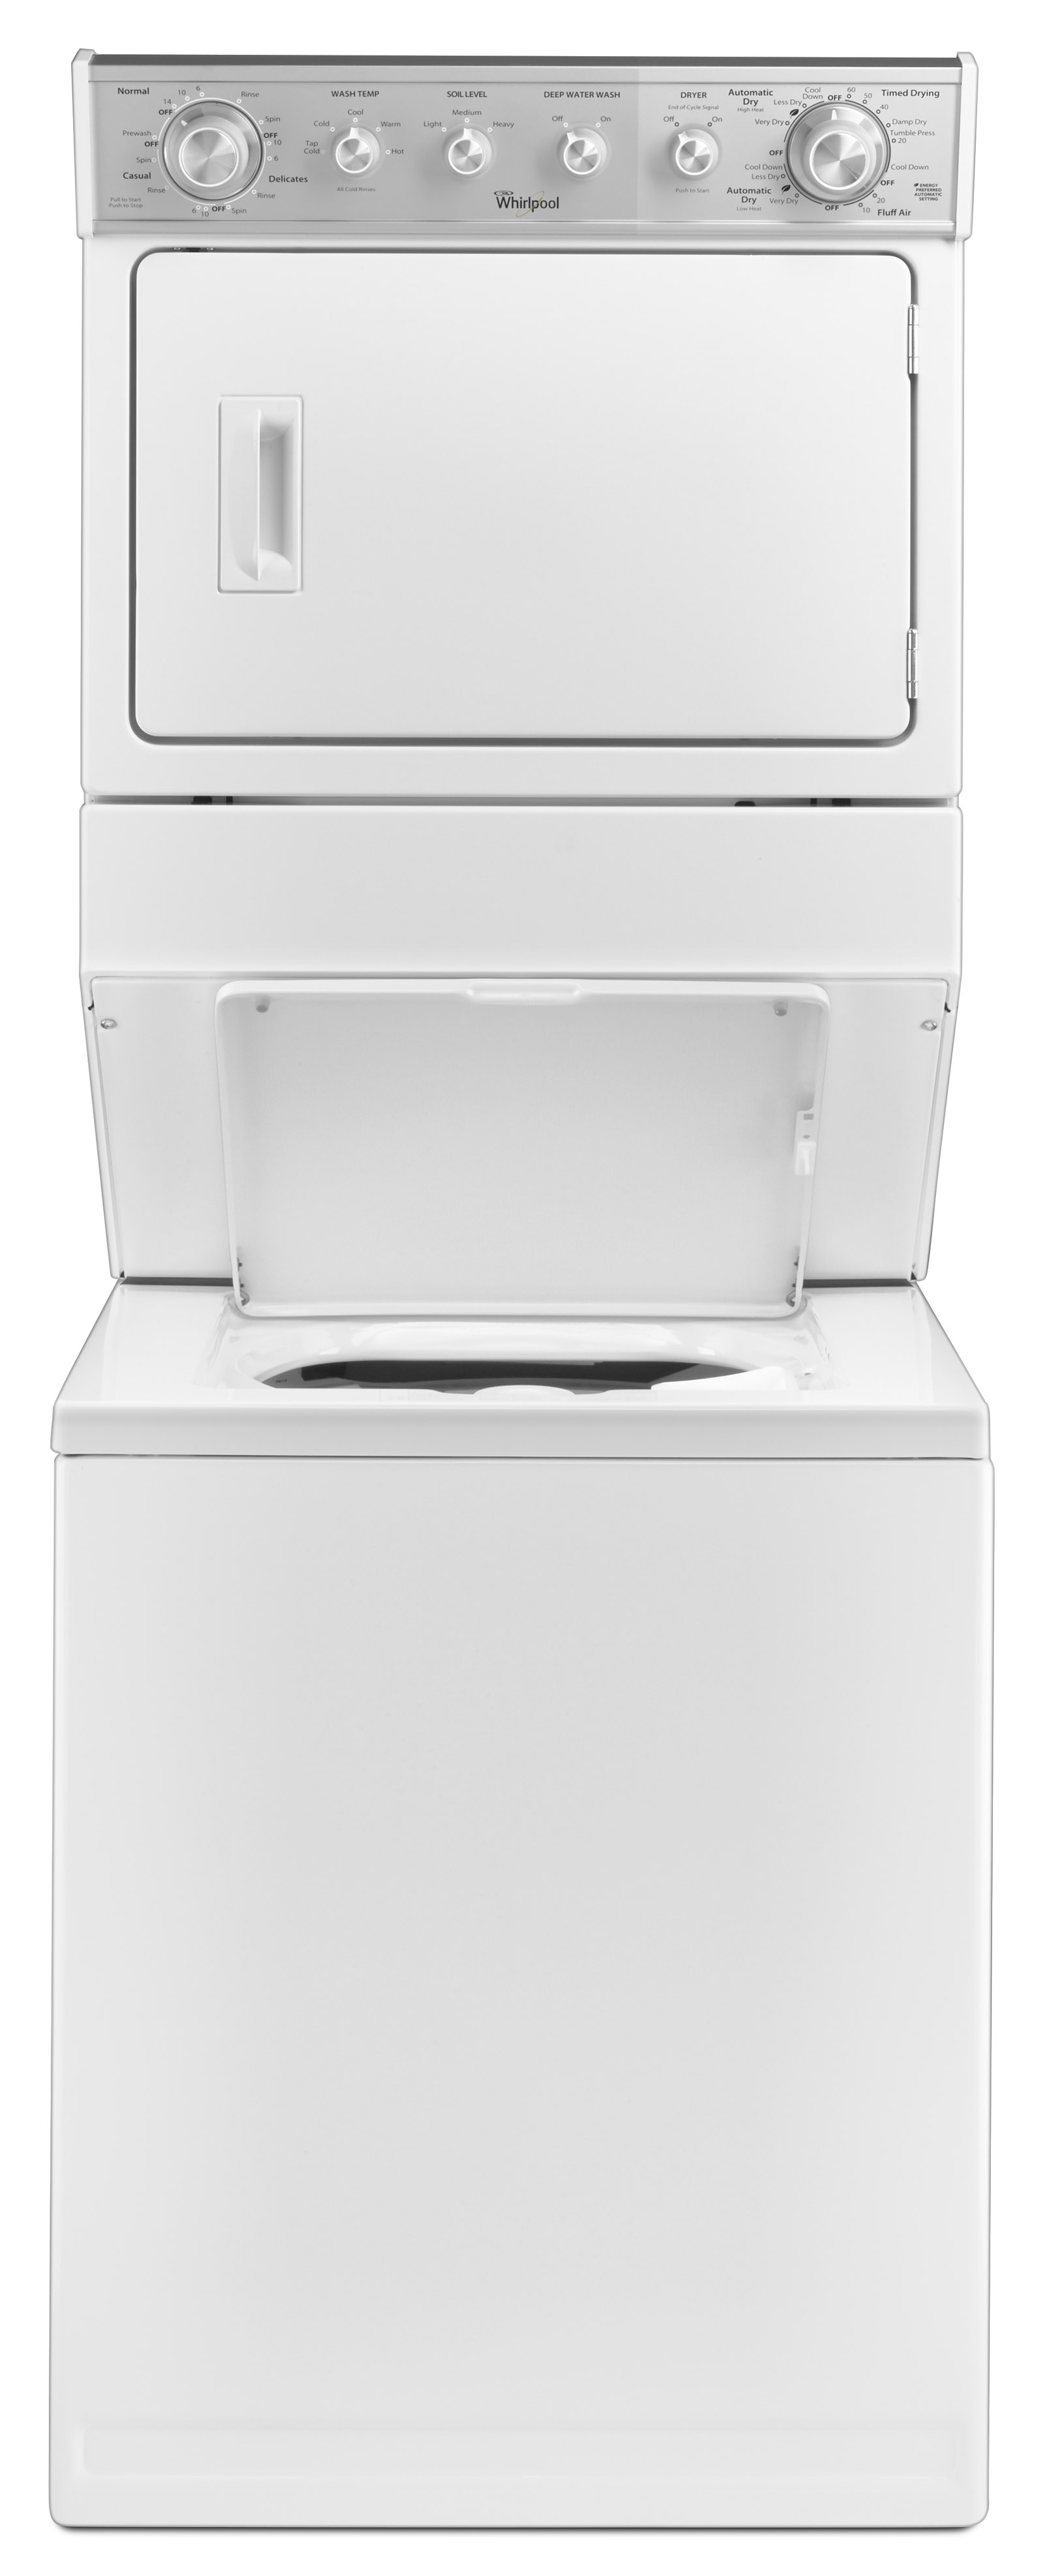 "Whirlpool WET4027EW 27"" Full-Size Electric Stacked Laundry Unit - White"